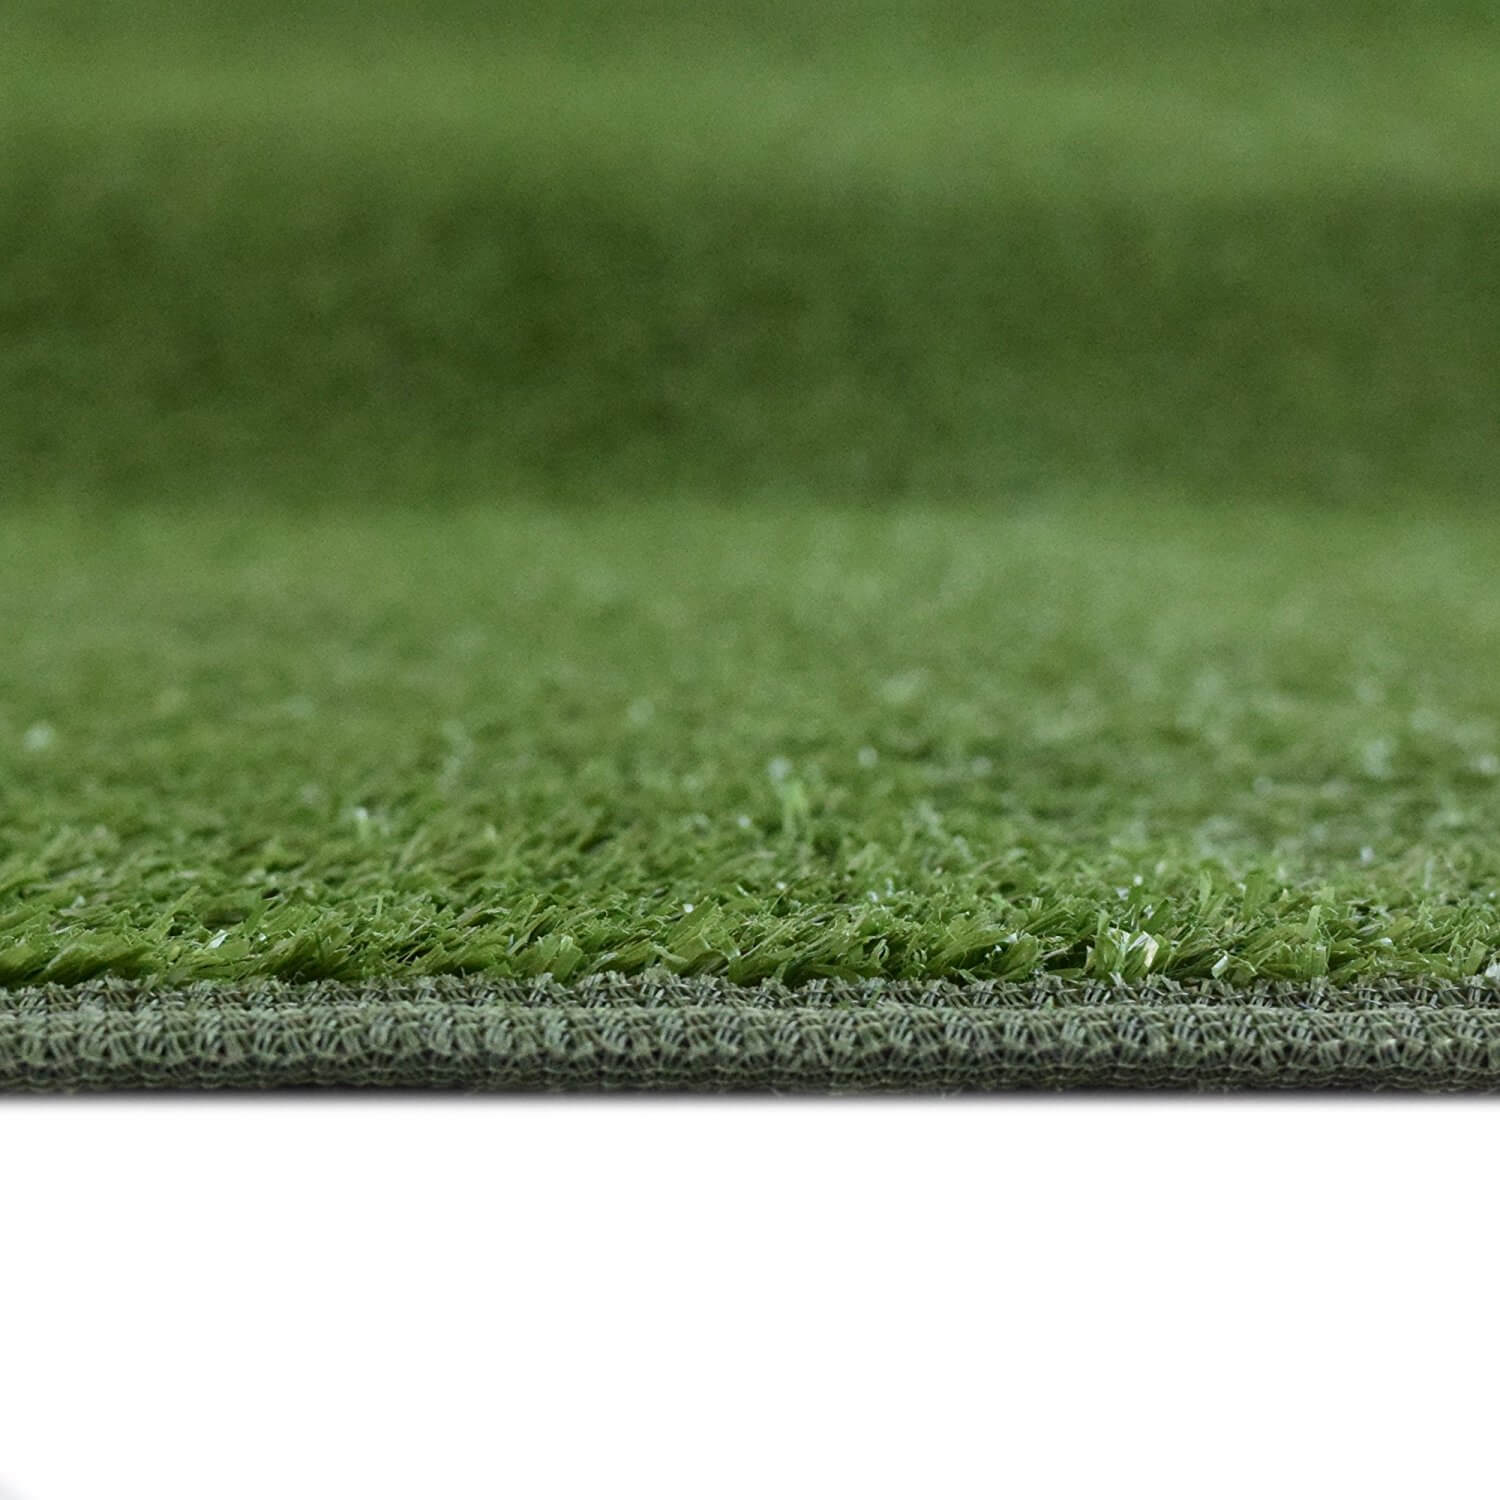 iCustom Artificial Grass